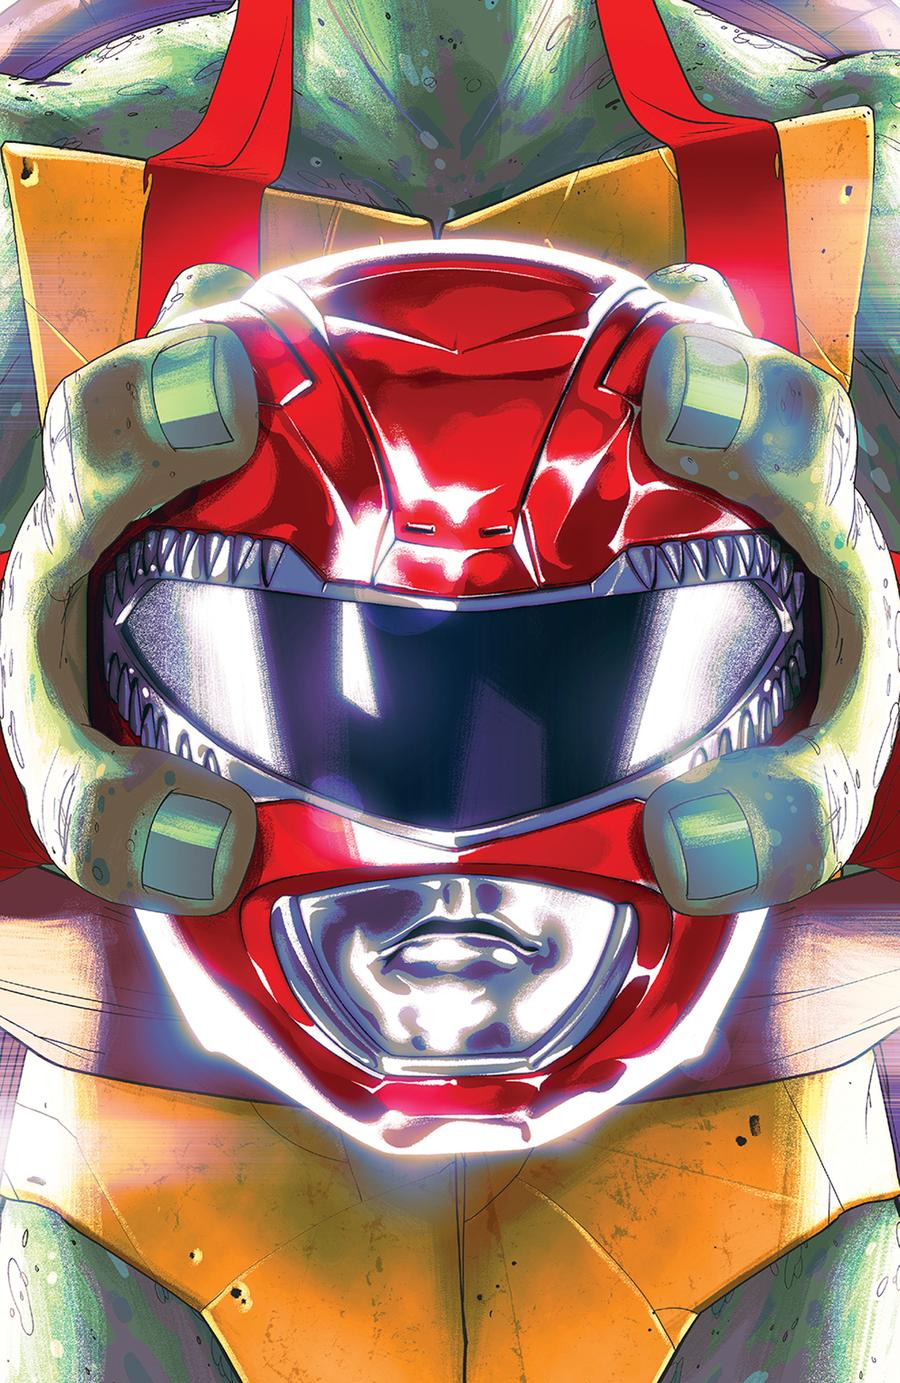 Mighty Morphin Power Rangers Teenage Mutant Ninja Turtles #1 Cover B Variant Goni Montes Cover